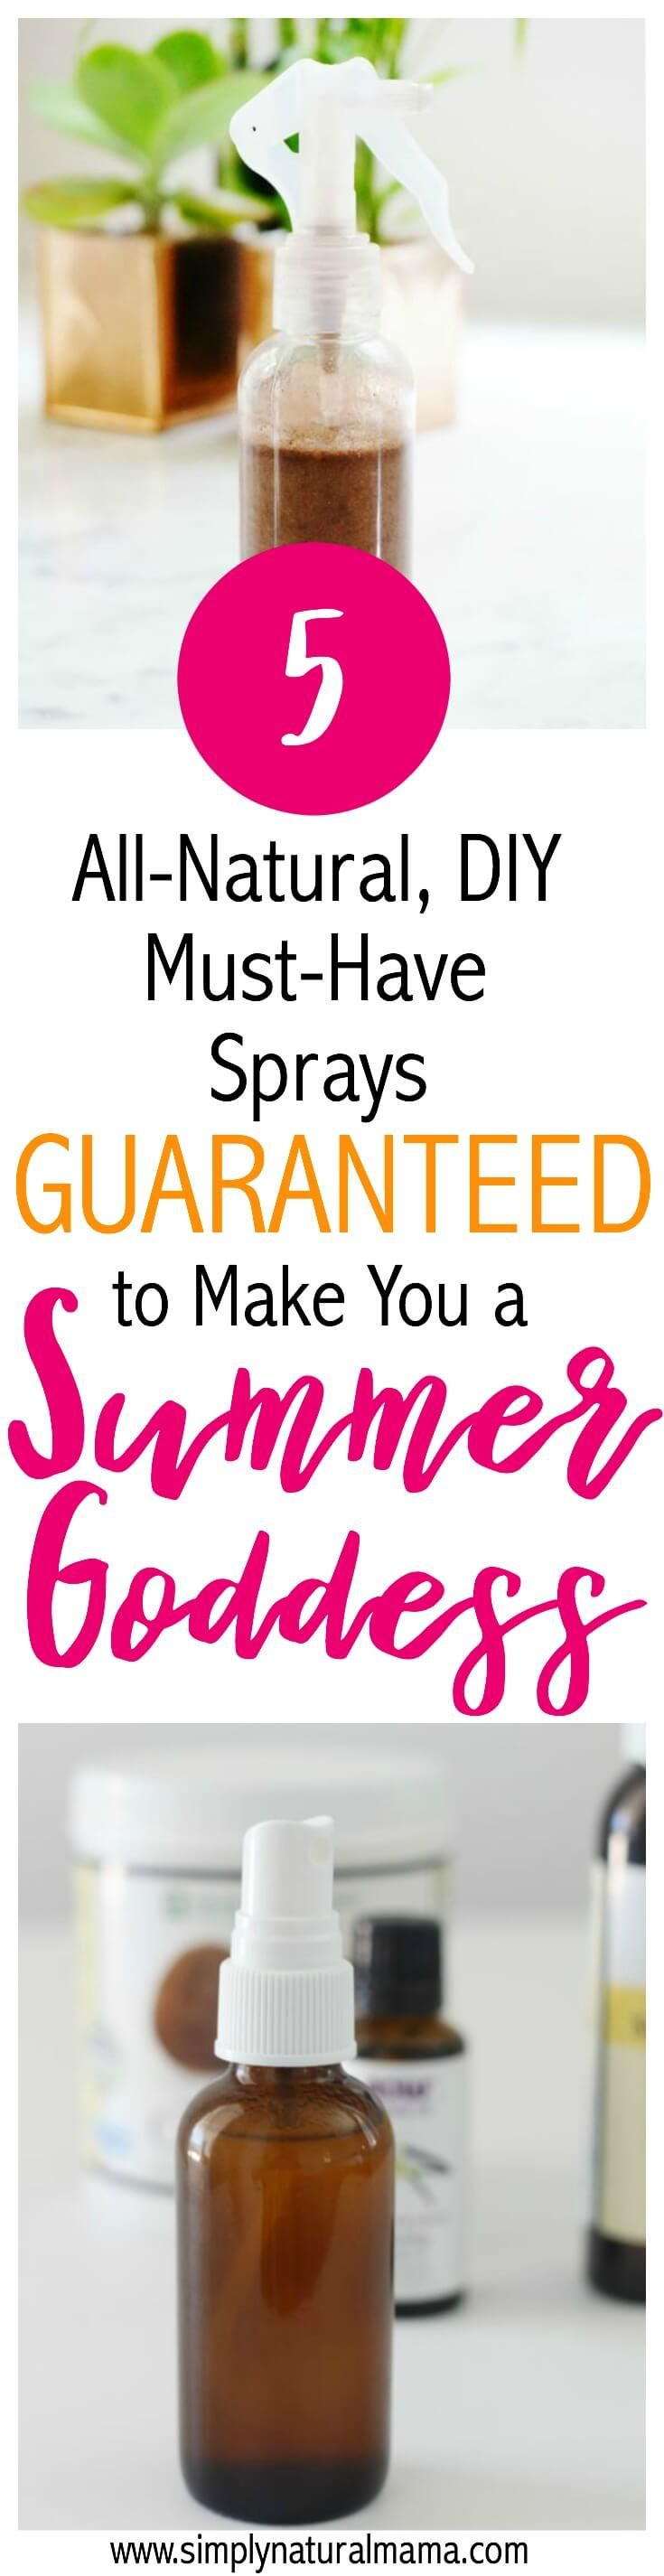 Wow! I am so excited for summer and this blog post was just perfect! All I need to do is make every one of these sprays, and I will be all set for the summer months... sunscreen, after sun spray, you name it! via @simplynaturalma